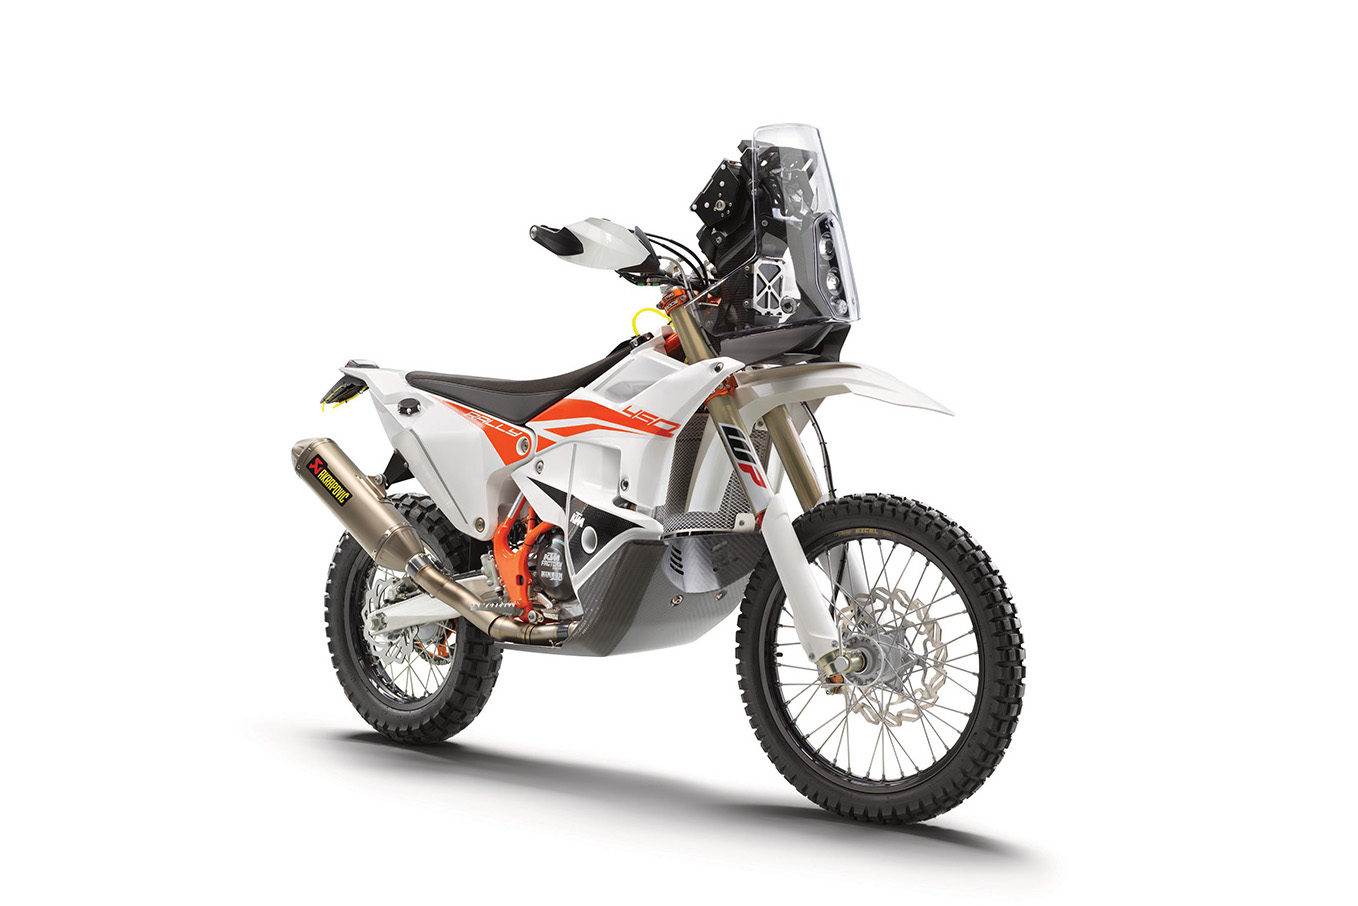 First look: 2021 KTM 450 Rally Replica